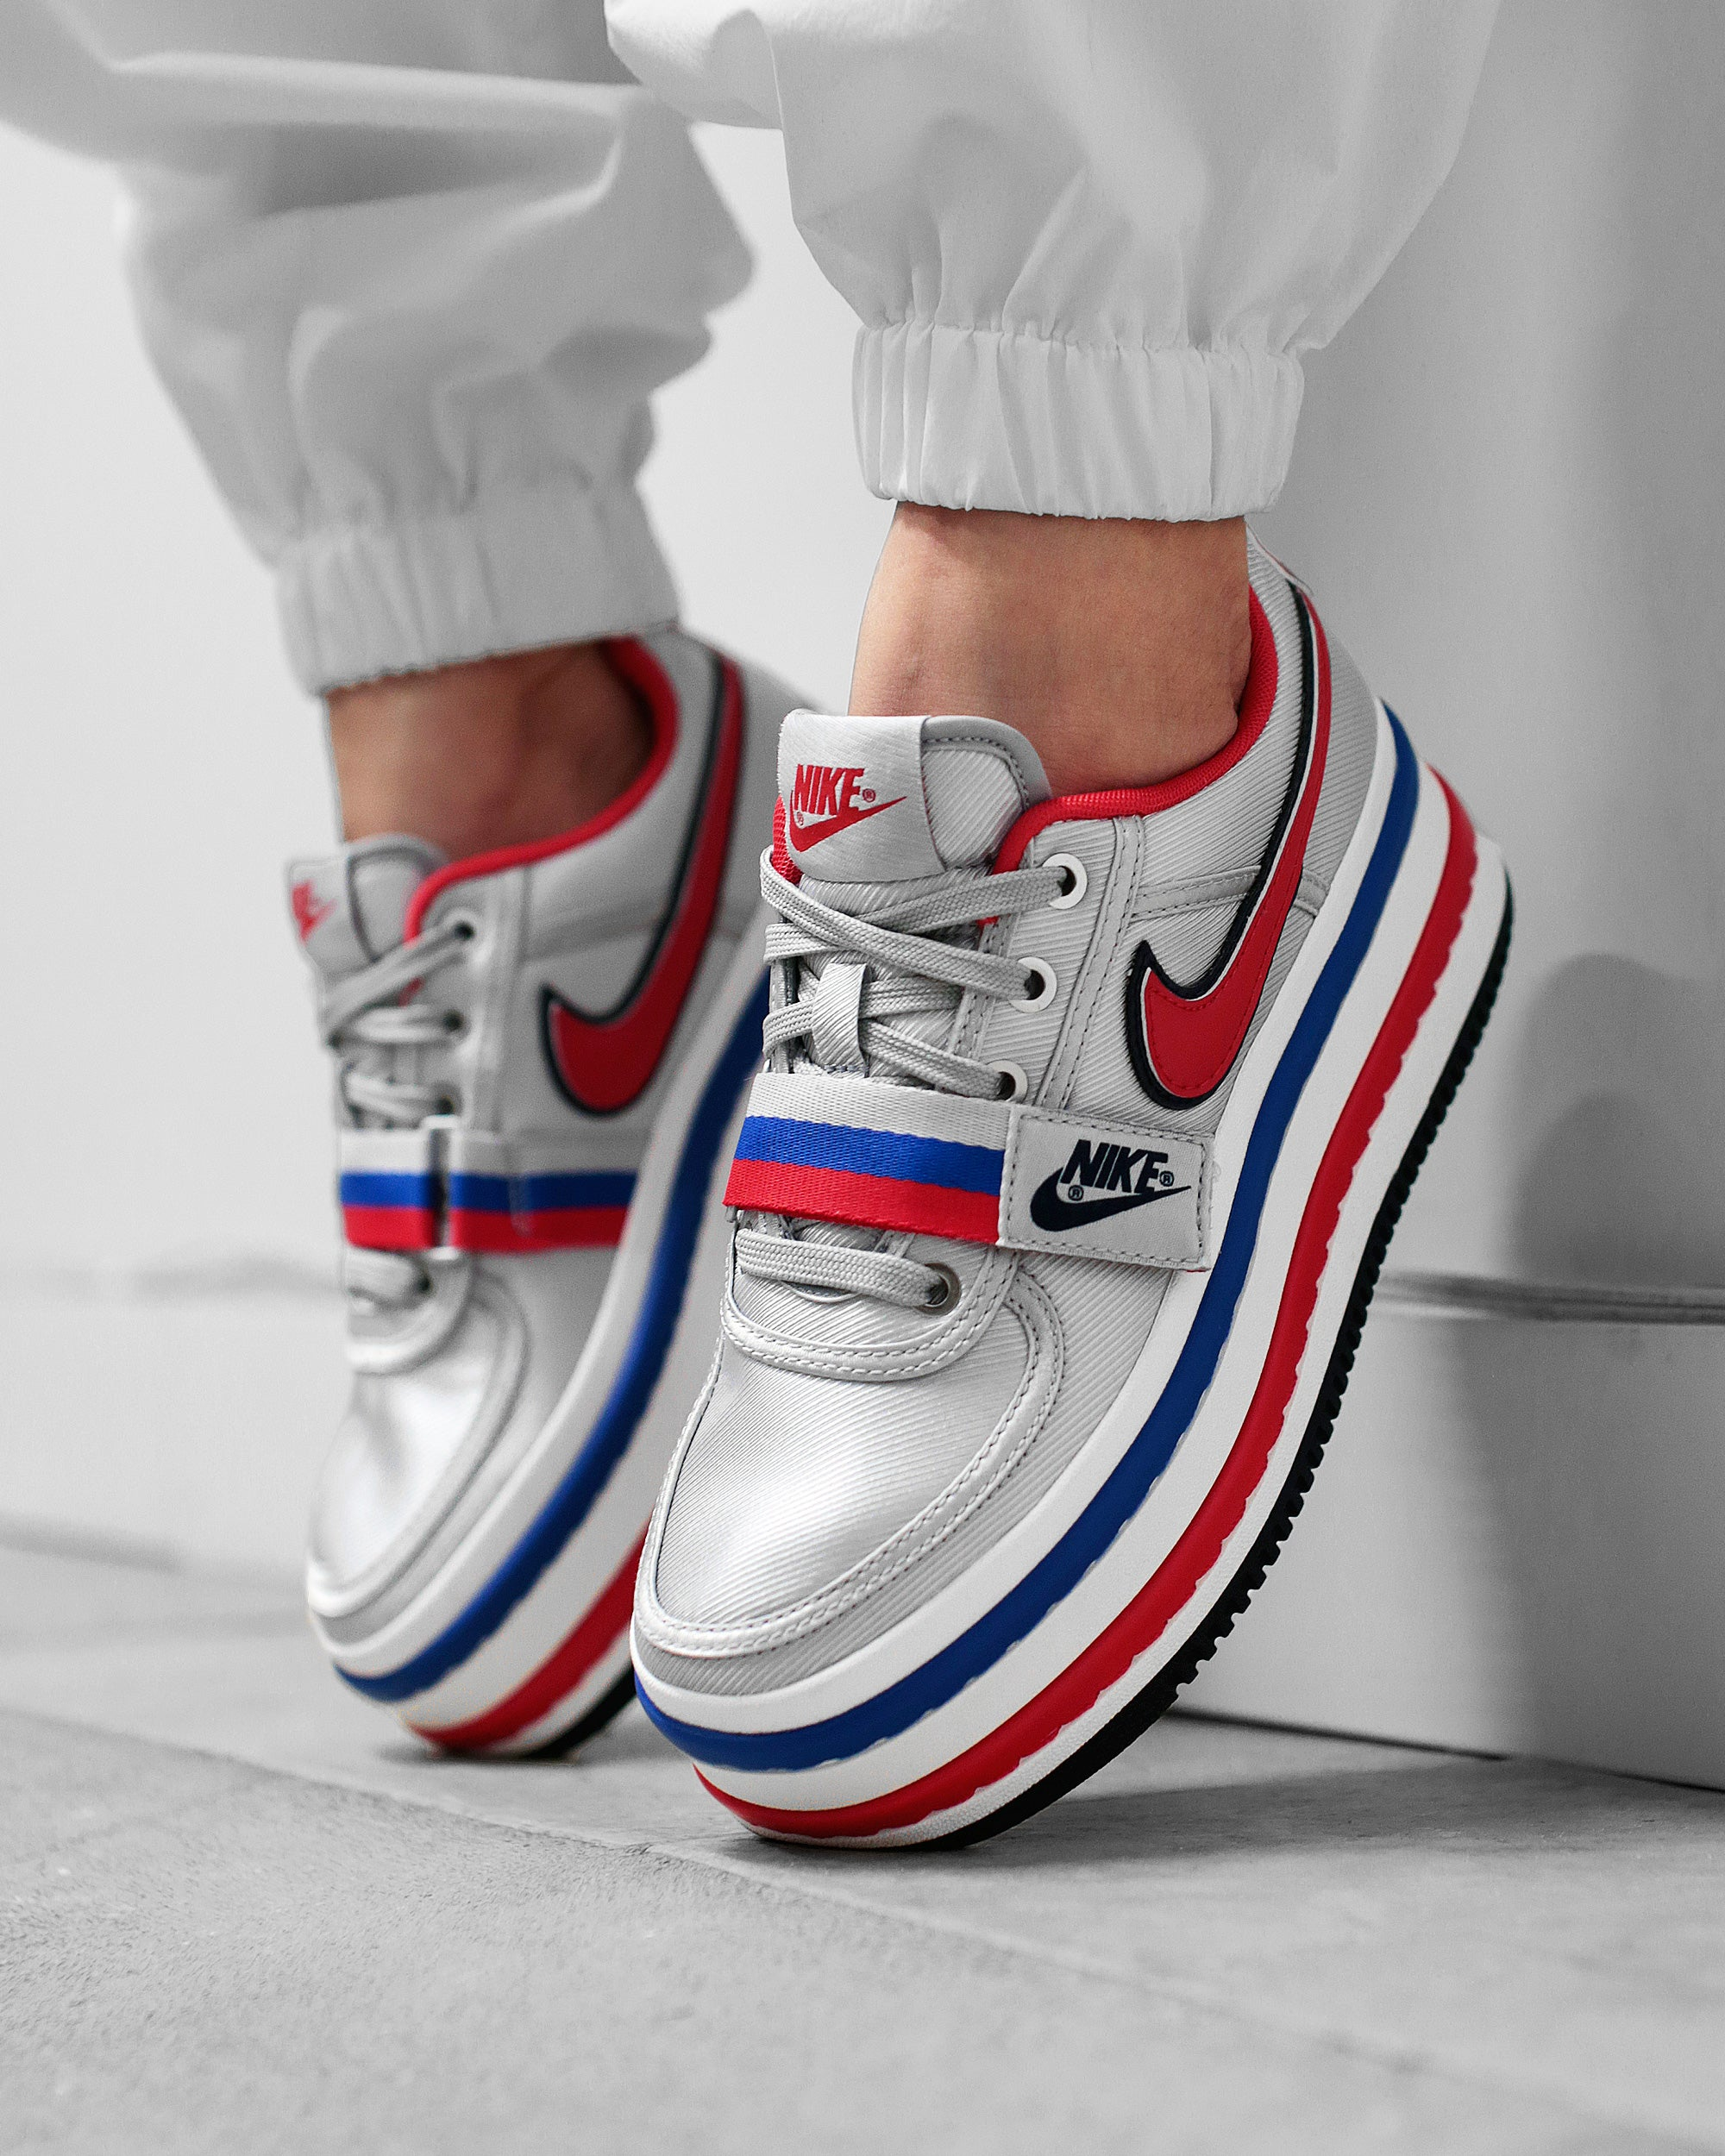 """competitive price 67025 81cb3 The Nike Women s Vandal 2K """"Double Stack"""" ( 120) Releasing Saturday, 5 5 at  124B Allen Street. First come, first serve."""